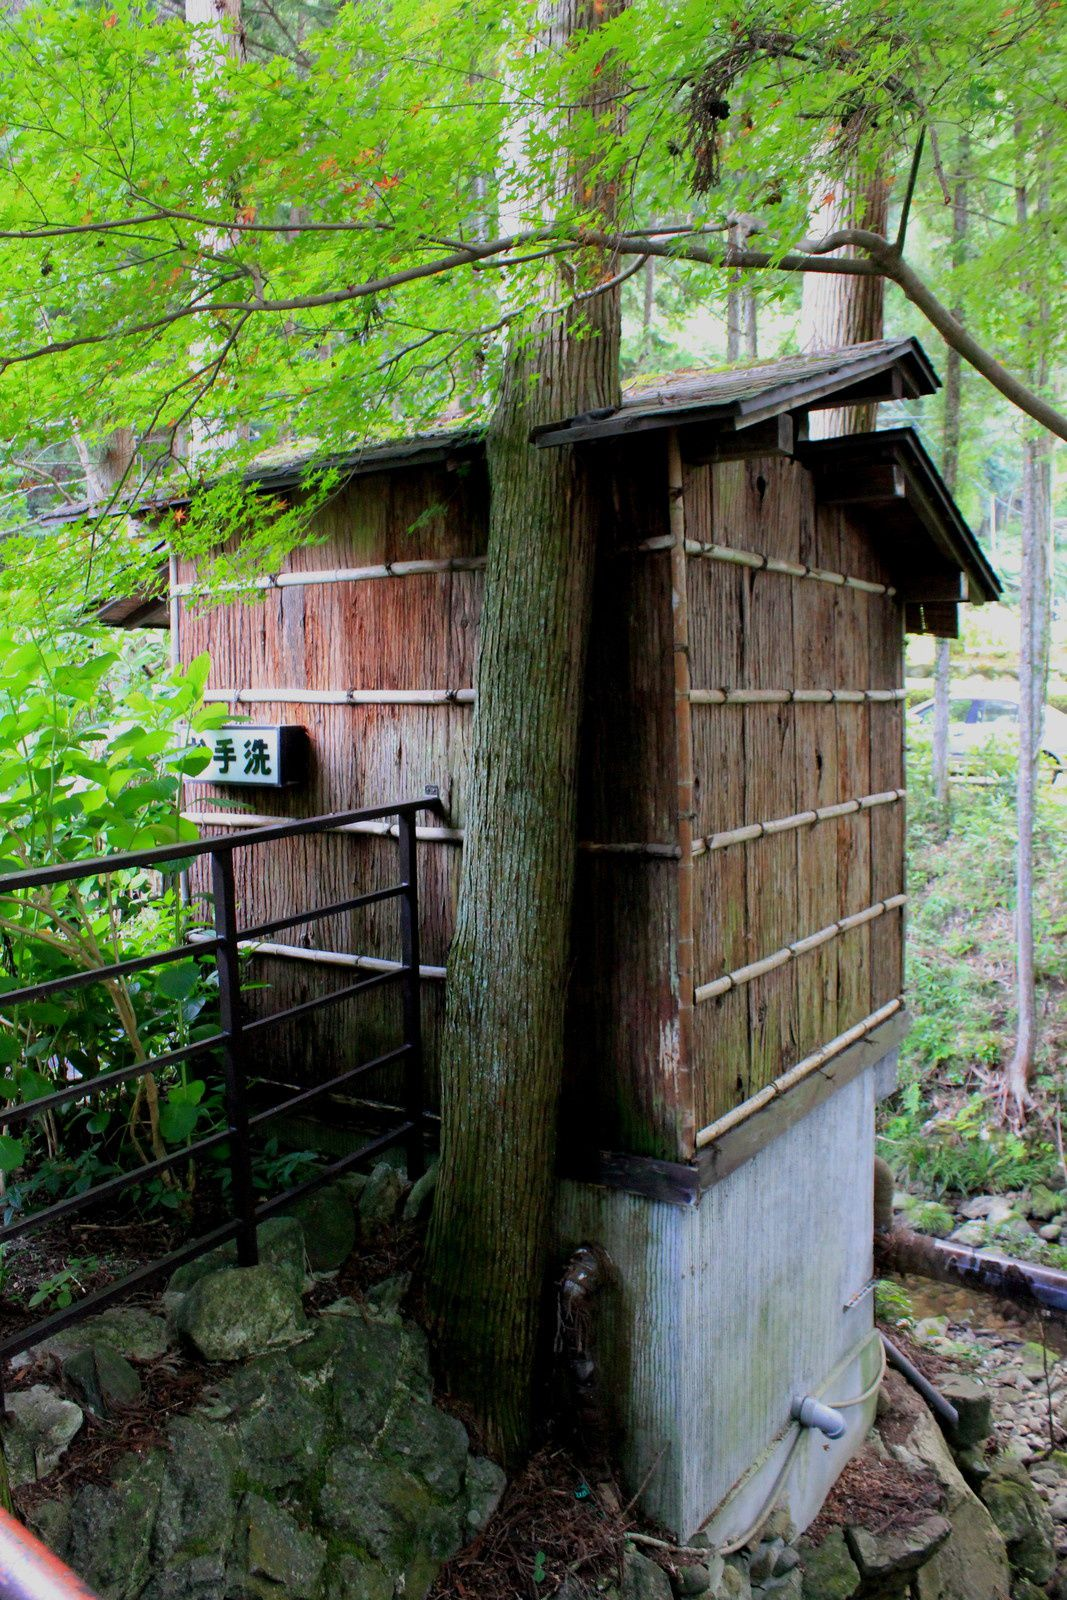 Les bains thermaux d'Akame - une source 'radioactive'!